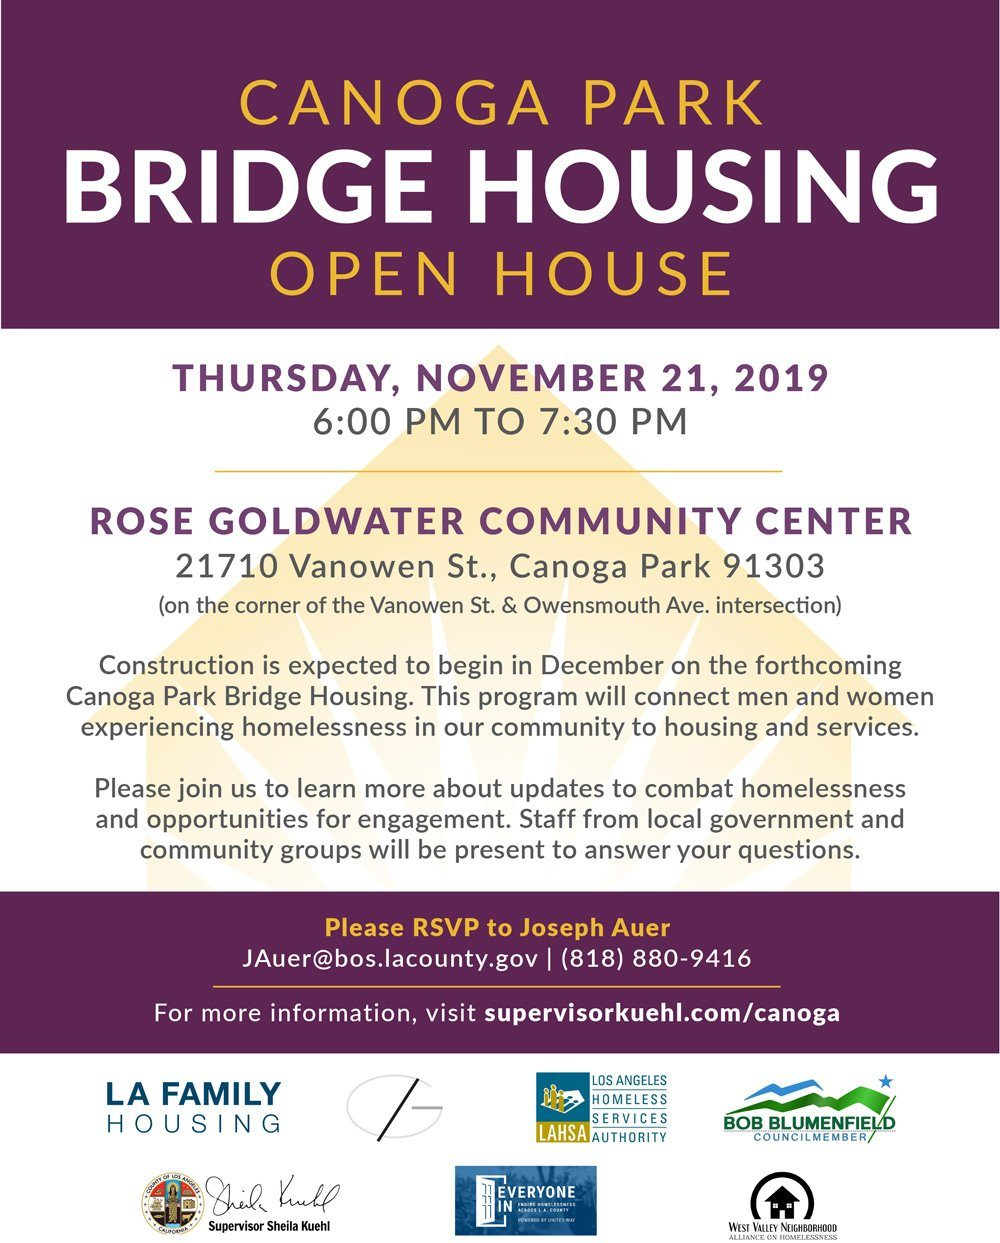 Canoga Park Bridge Housing Open House – Thursday, November 21